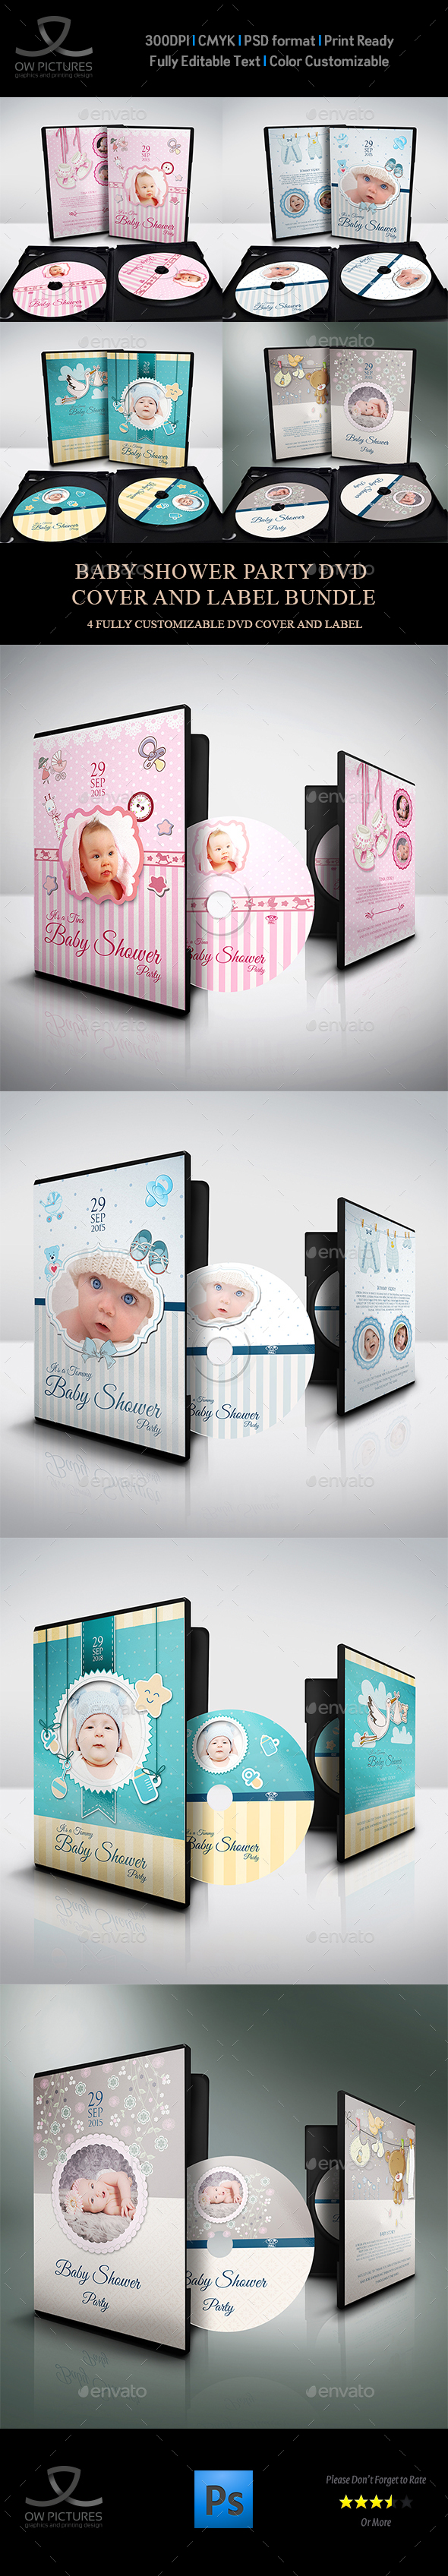 Baby Shower Party DVD Bundle Vol.1 - CD & DVD Artwork Print Templates